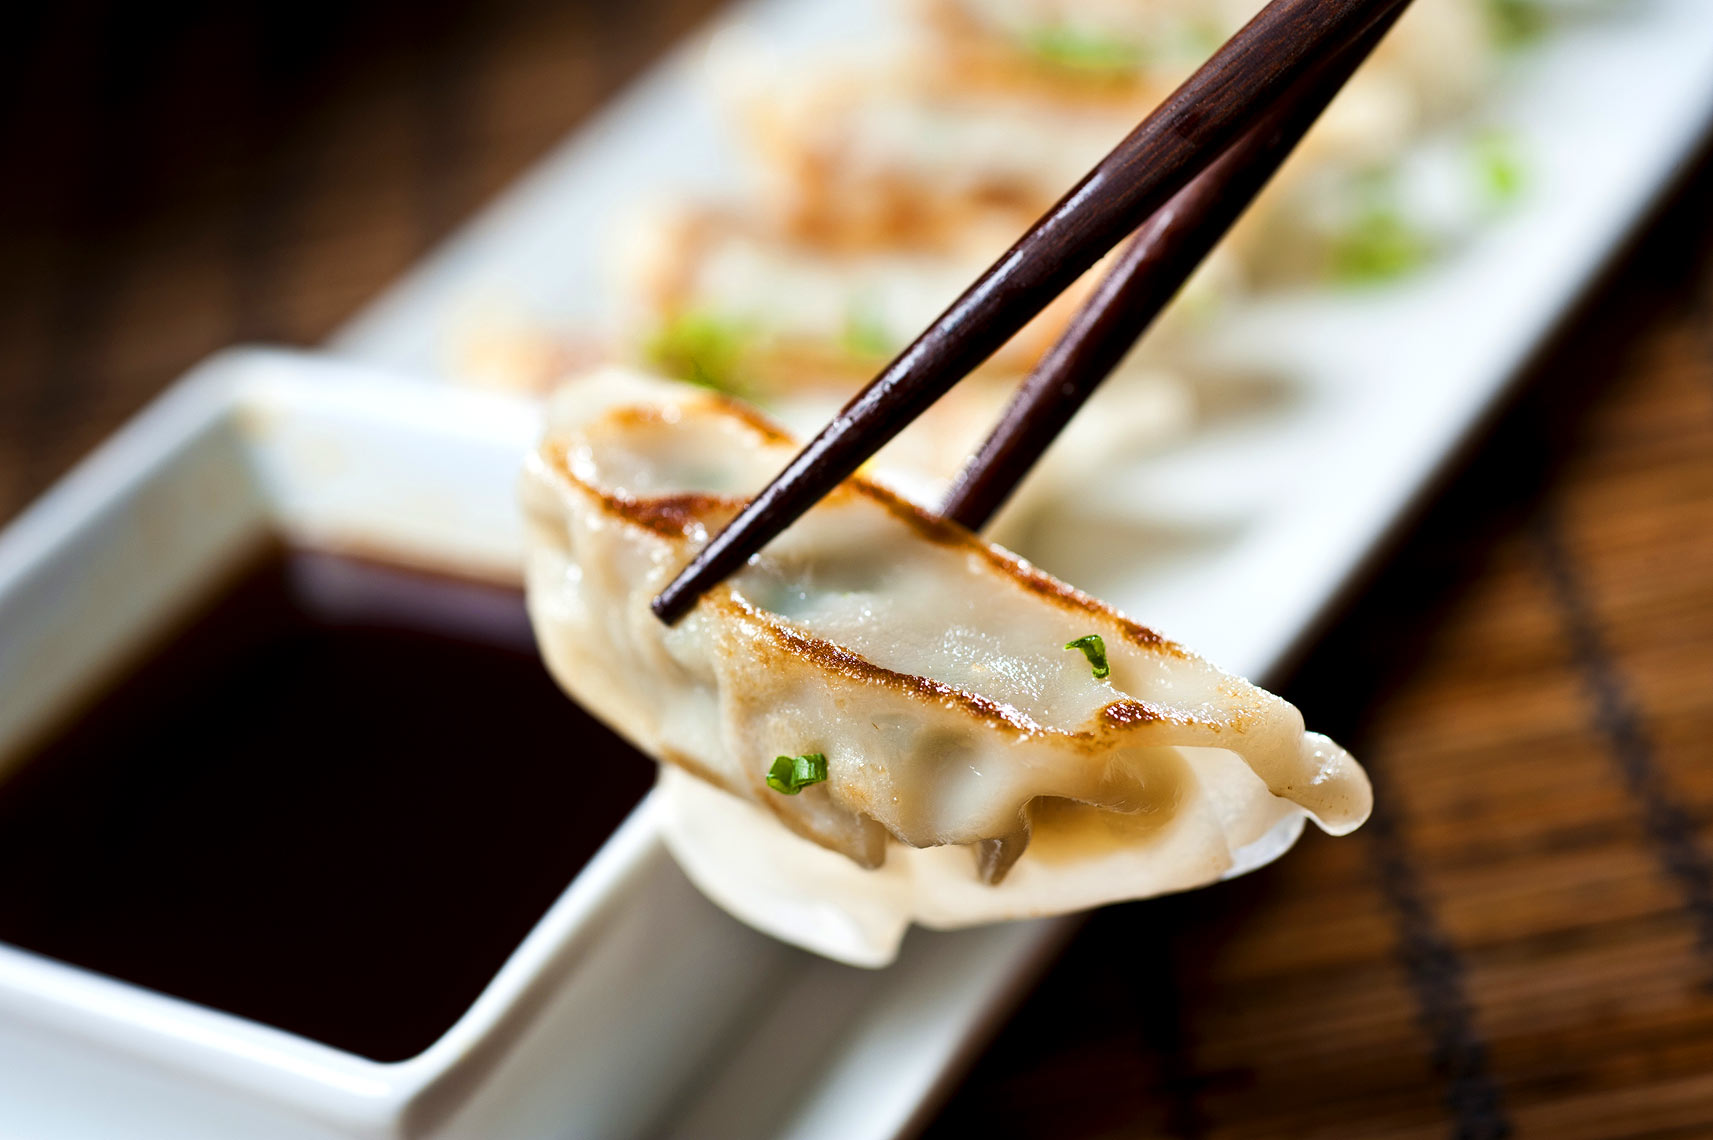 Raleigh food photography Bryan Regan Kanki dumplings